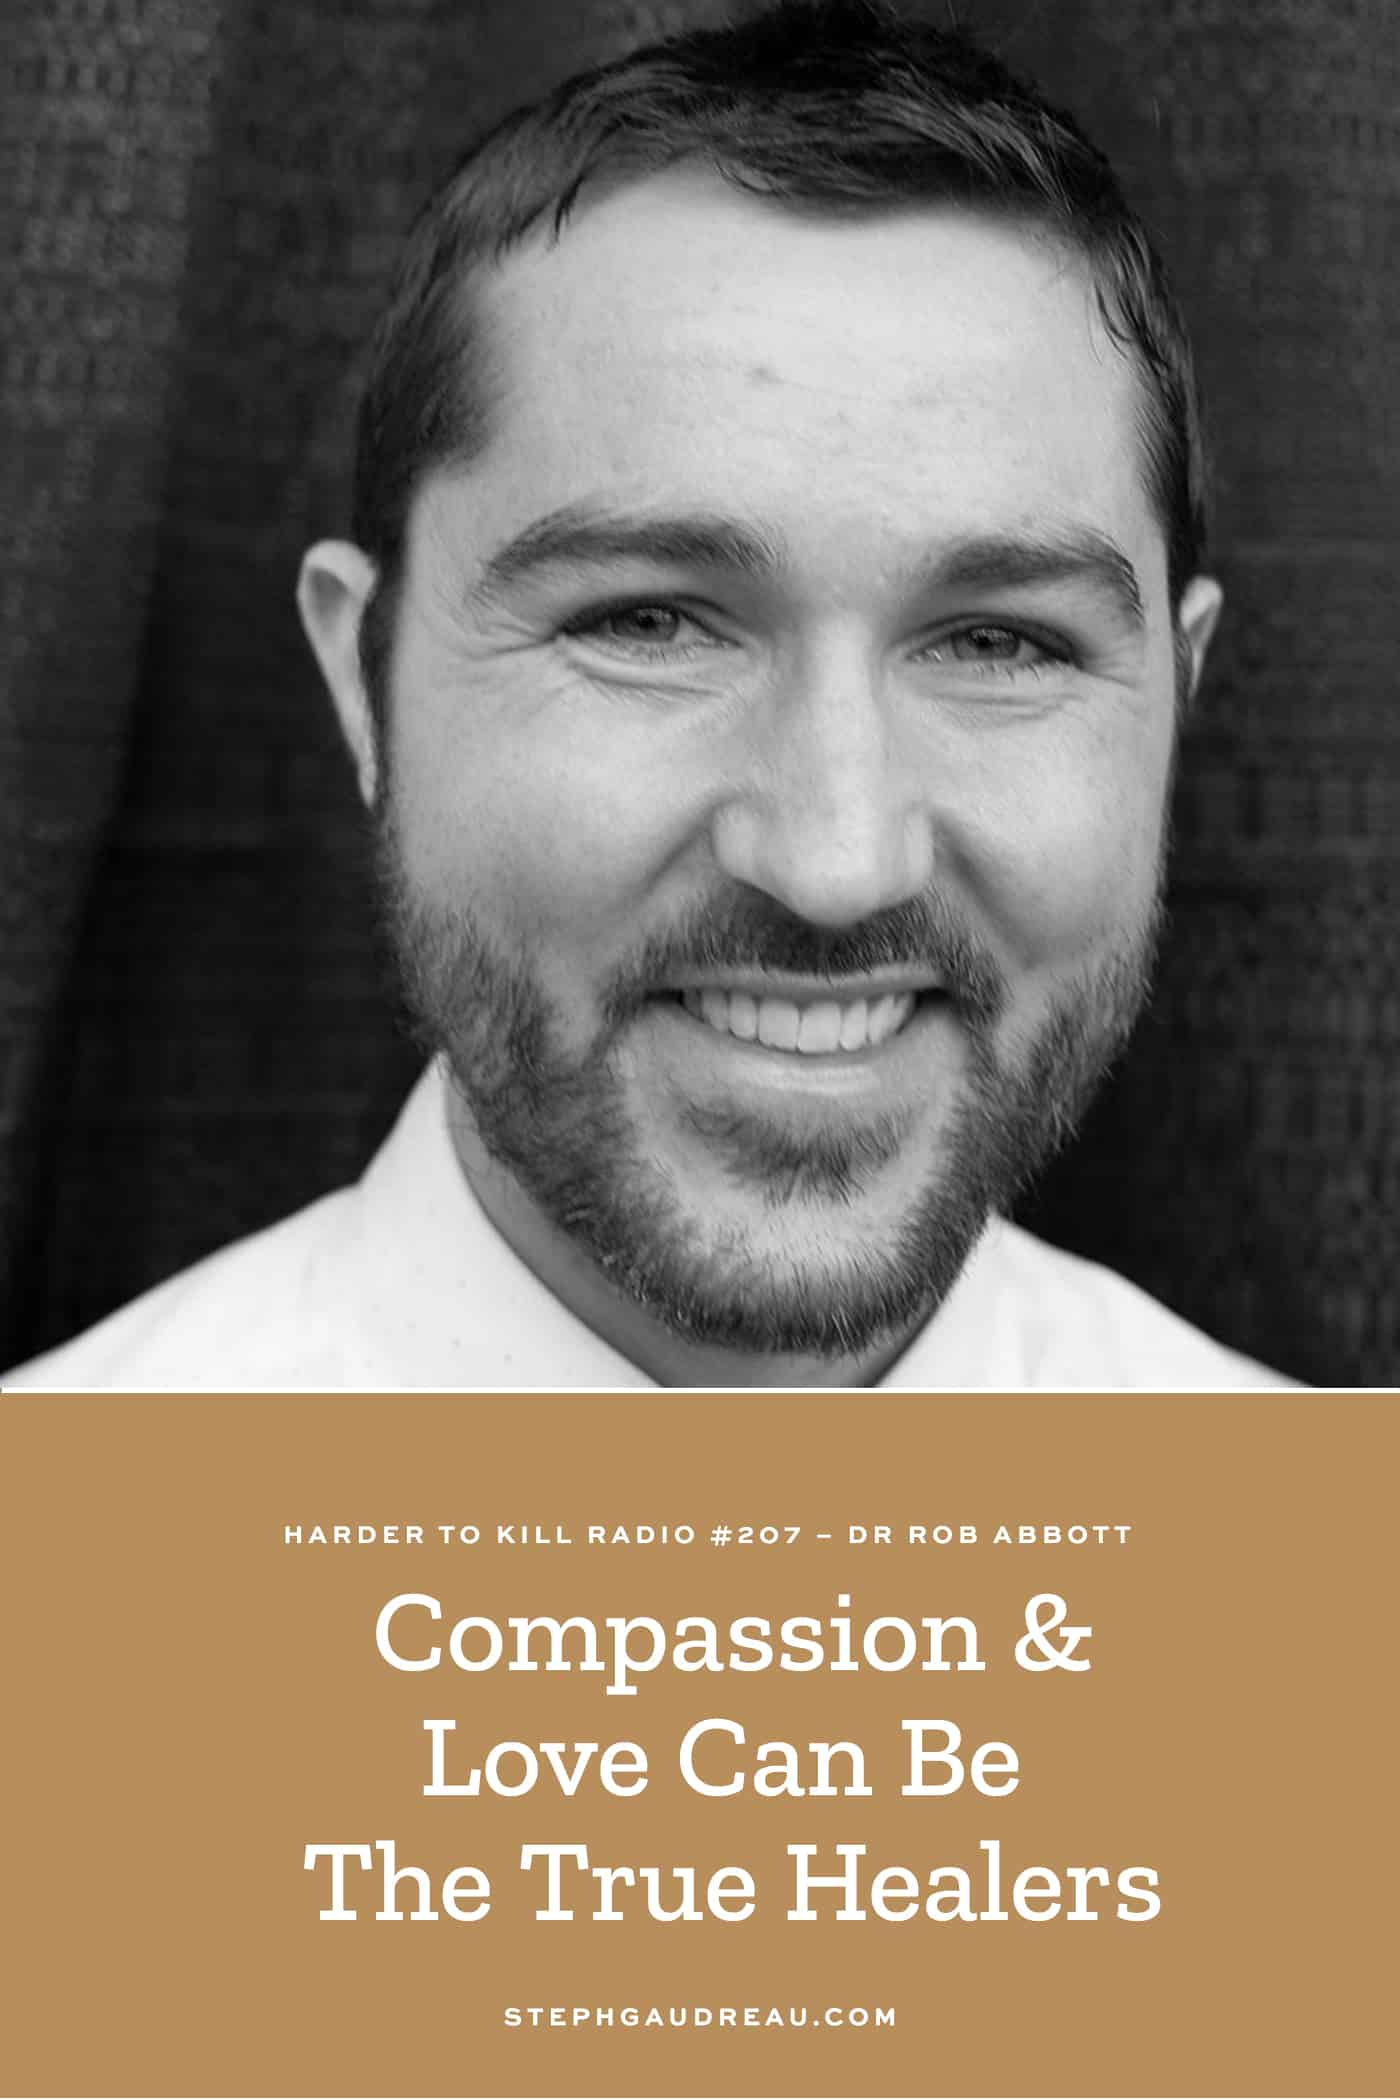 Harder To Kill Radio How Compassion & Love Can Be The True Healers w/ Dr. Rob Abbott